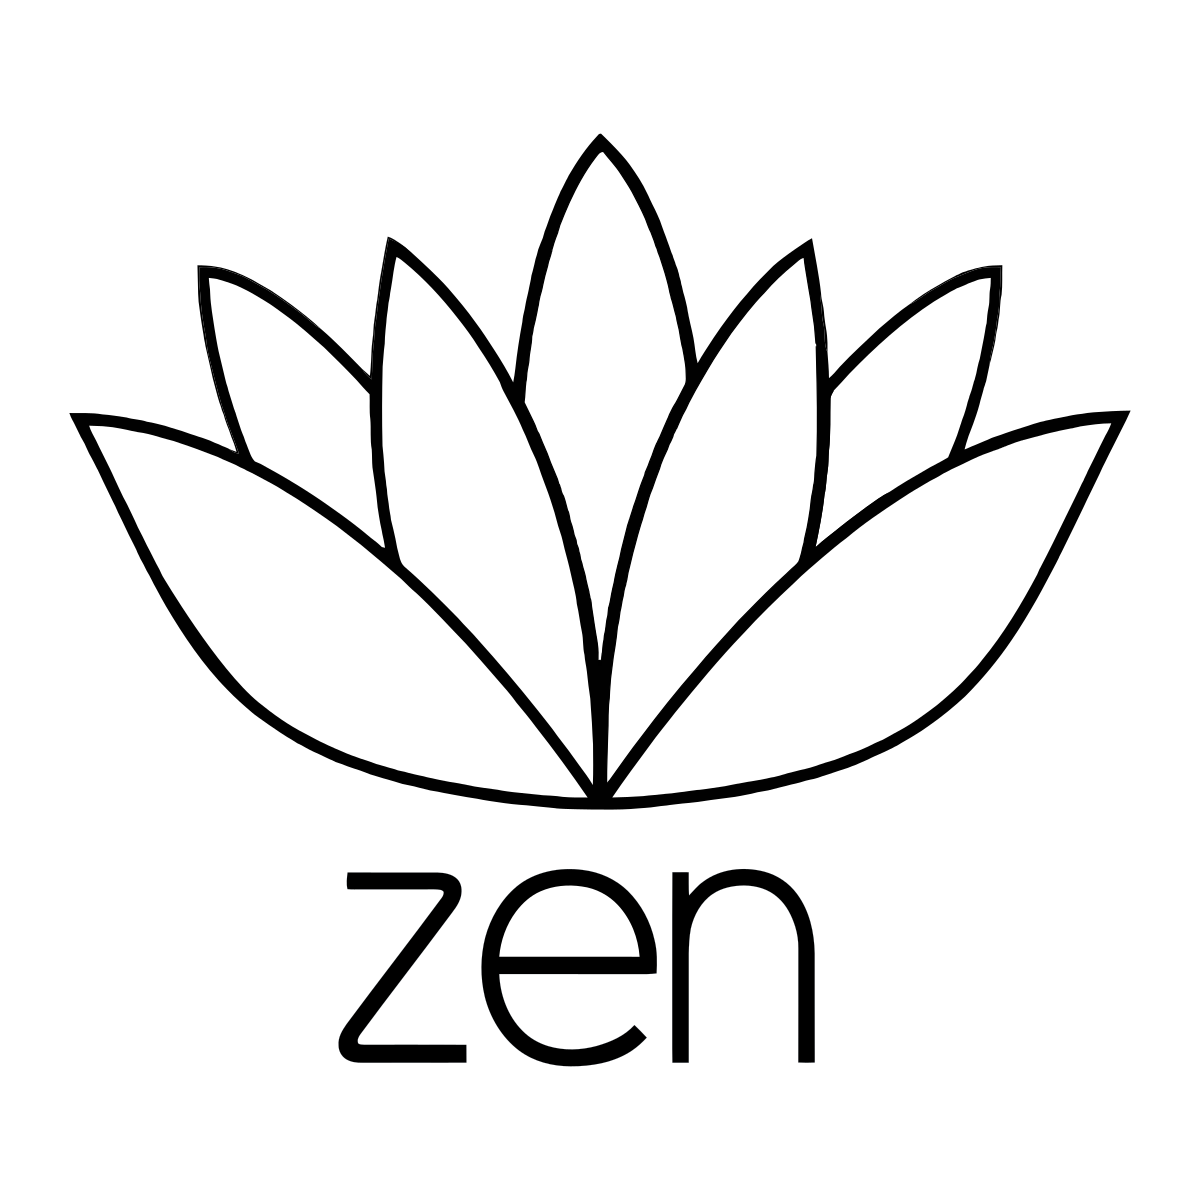 logo zen